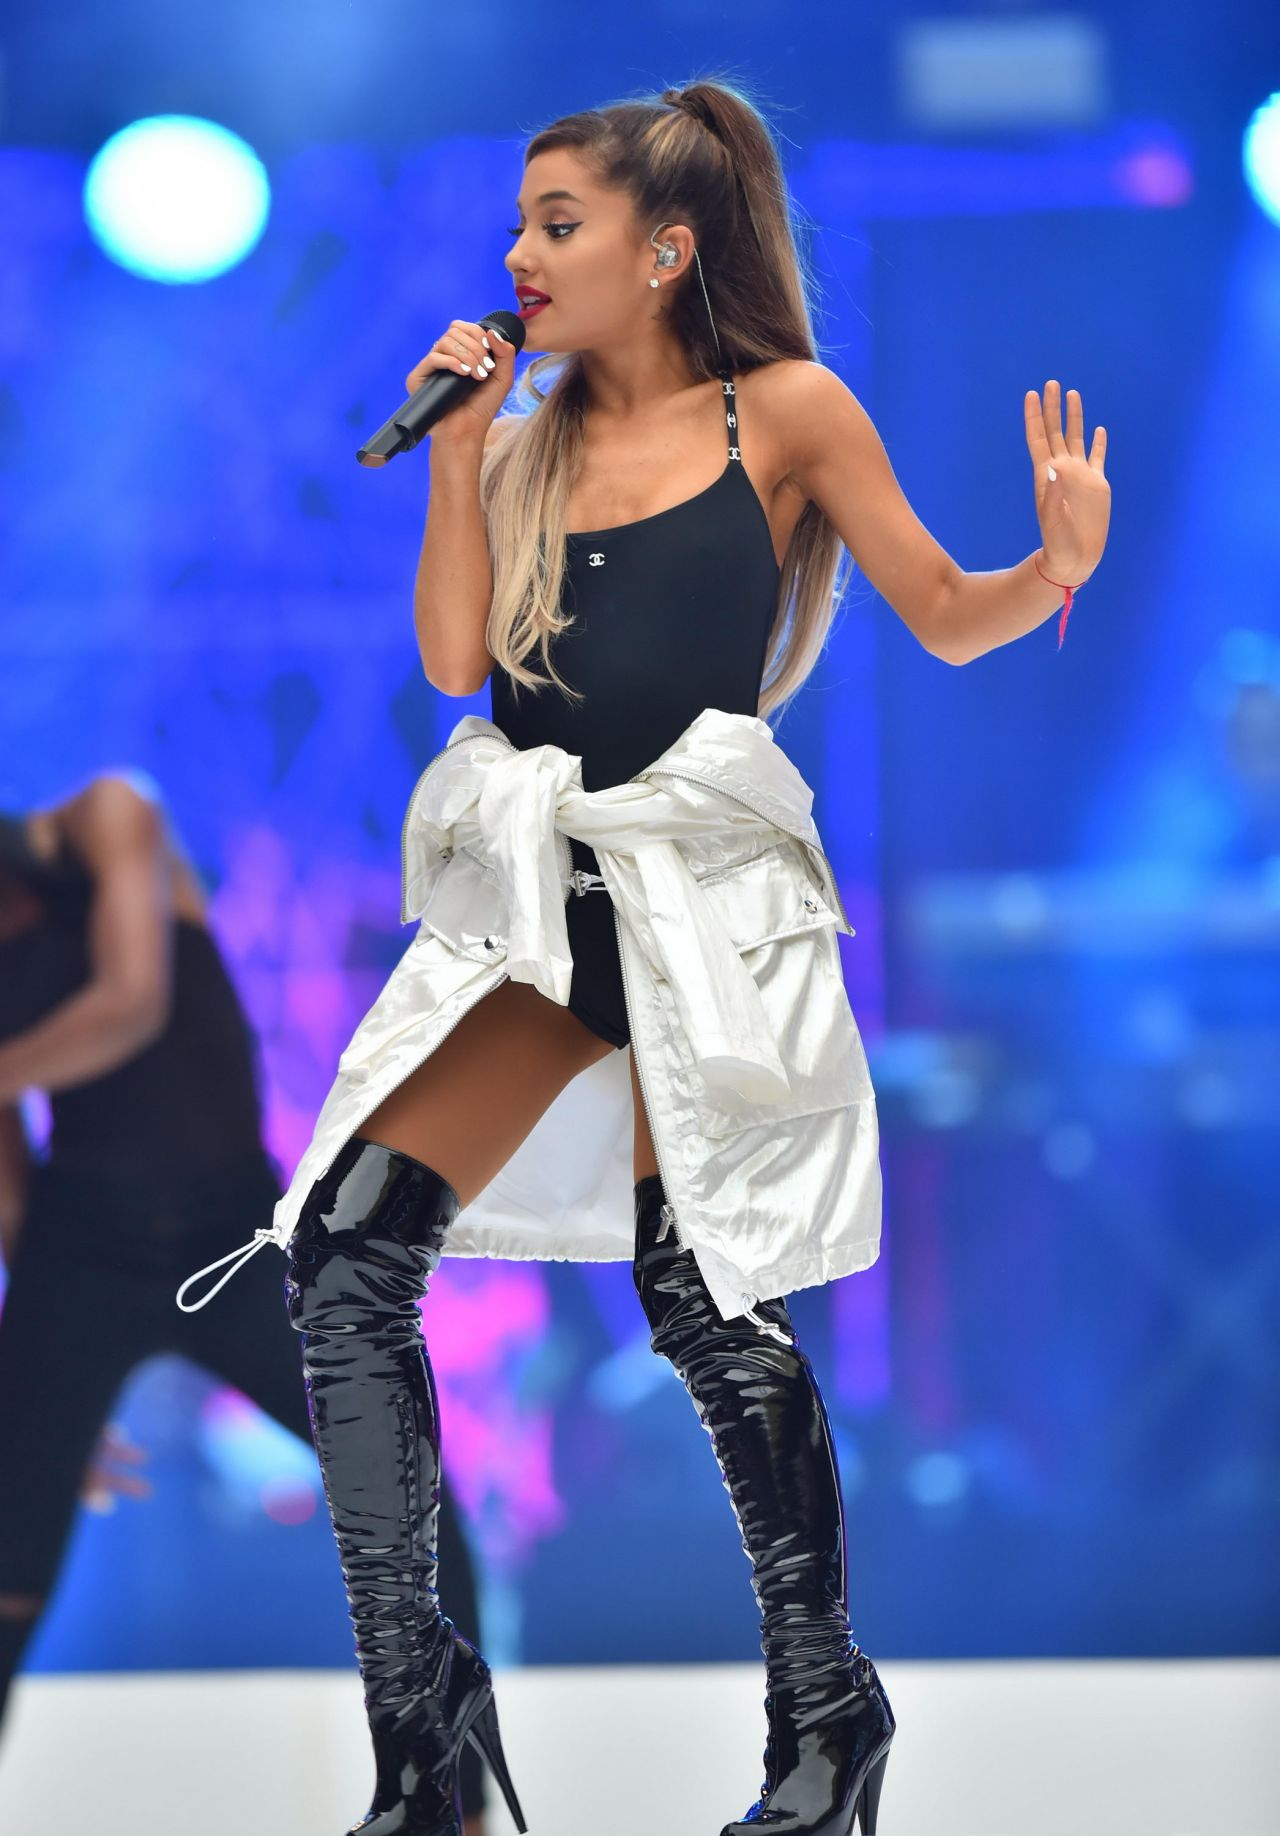 Ariana Grande - Performing at Capital FM's Summertime Ball